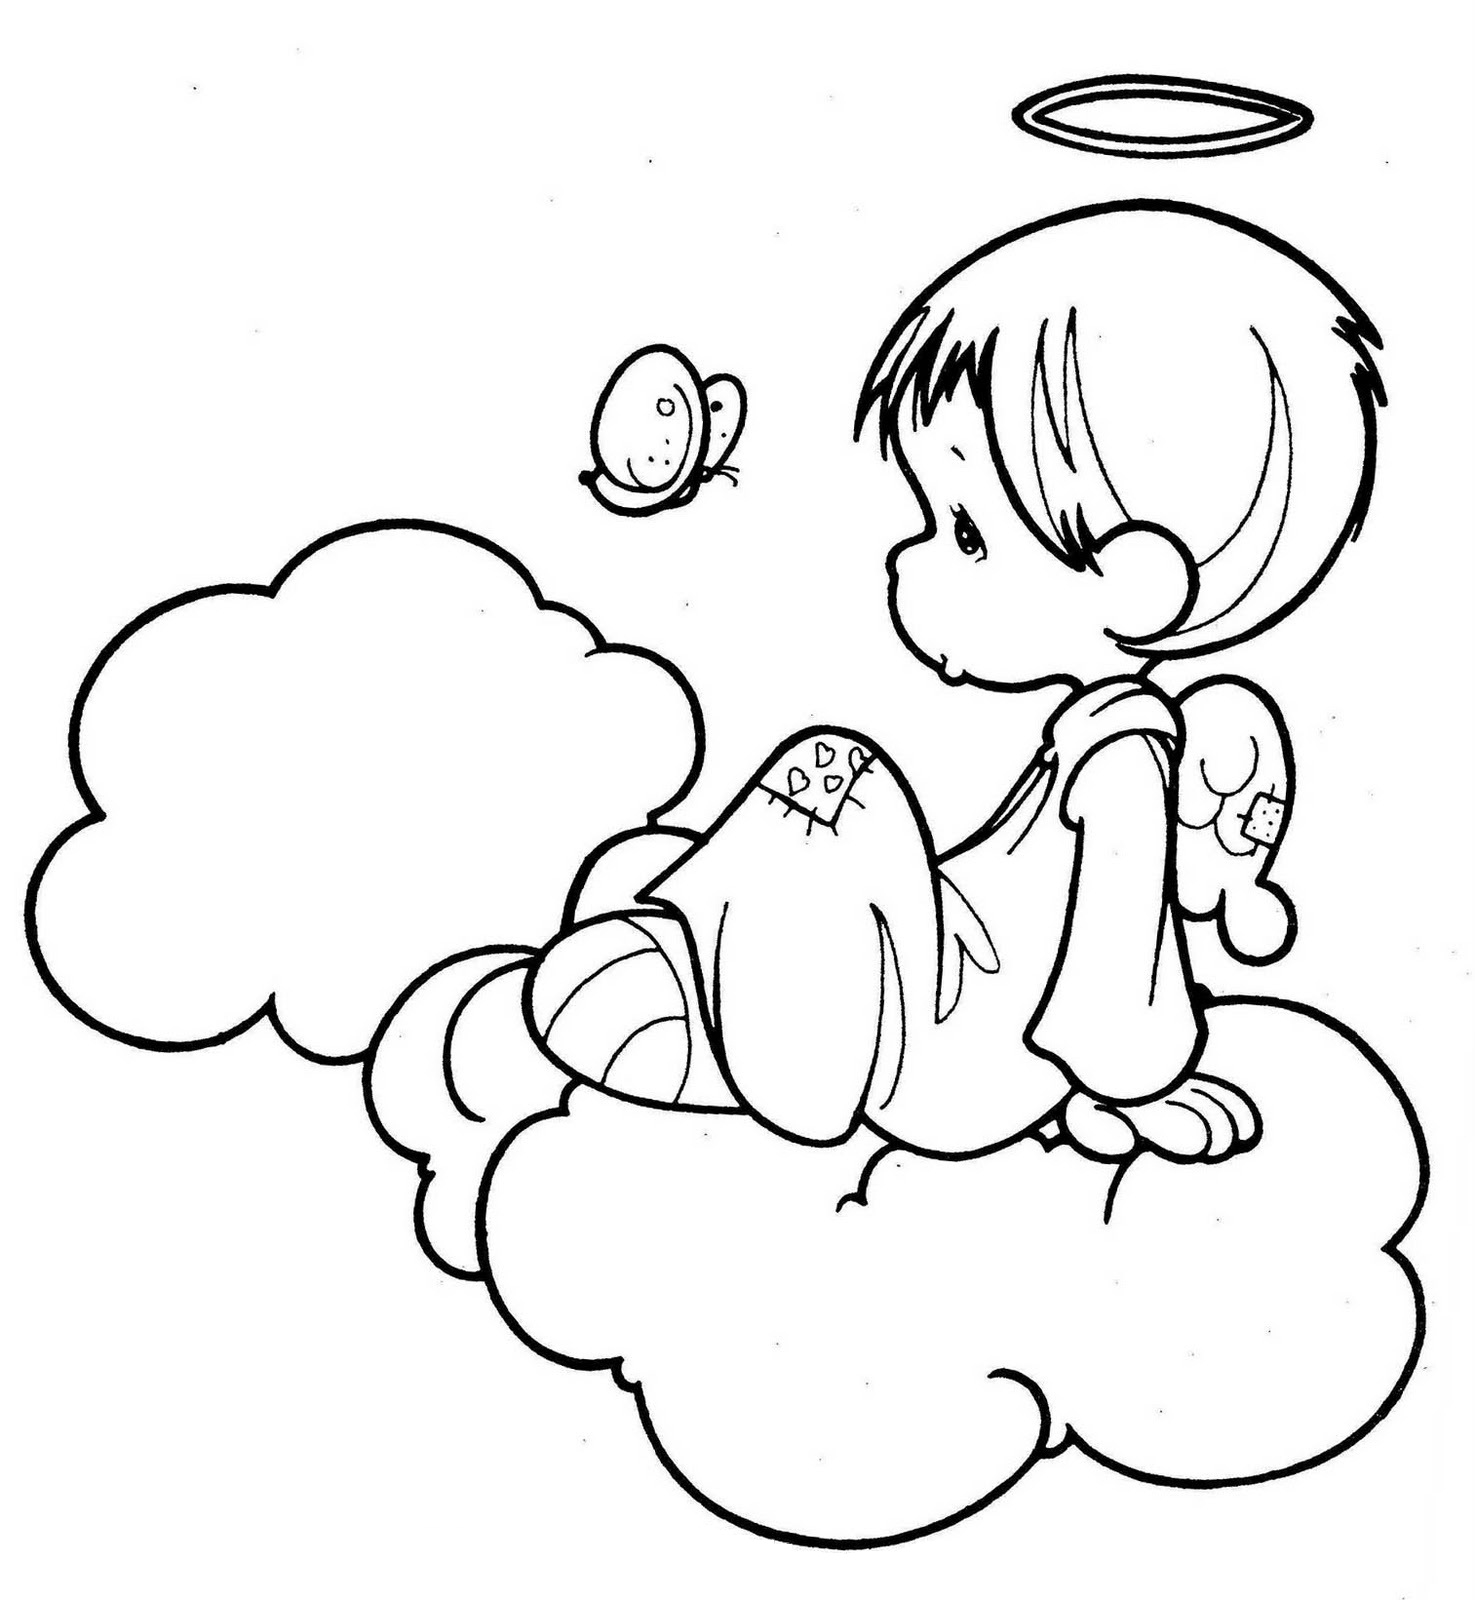 angel coloring sheets kids page angel coloring pages angel sheets coloring